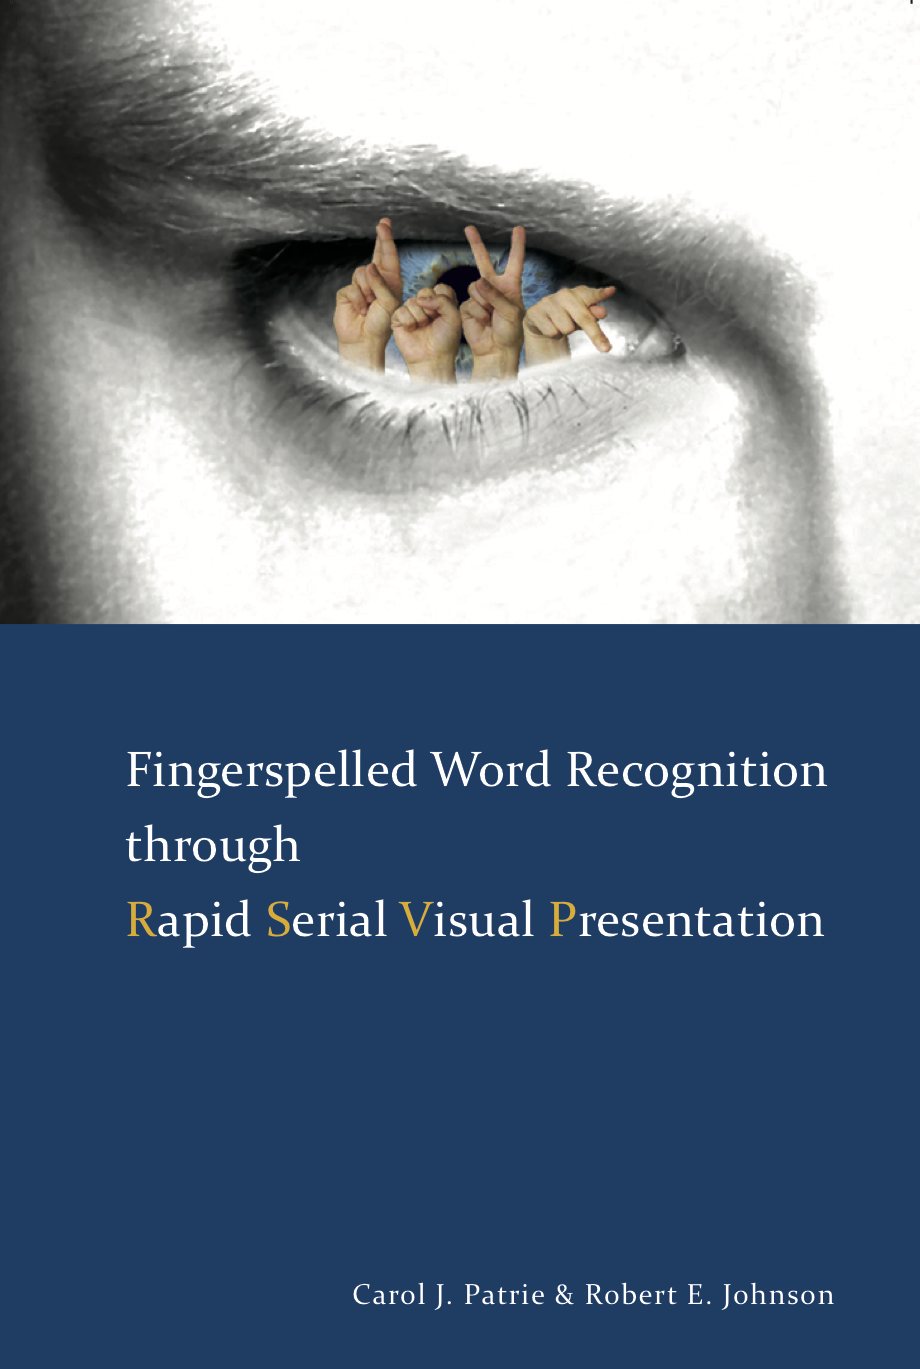 Fingerspelled Word Recognition through Rapid Serial Visual Presentation